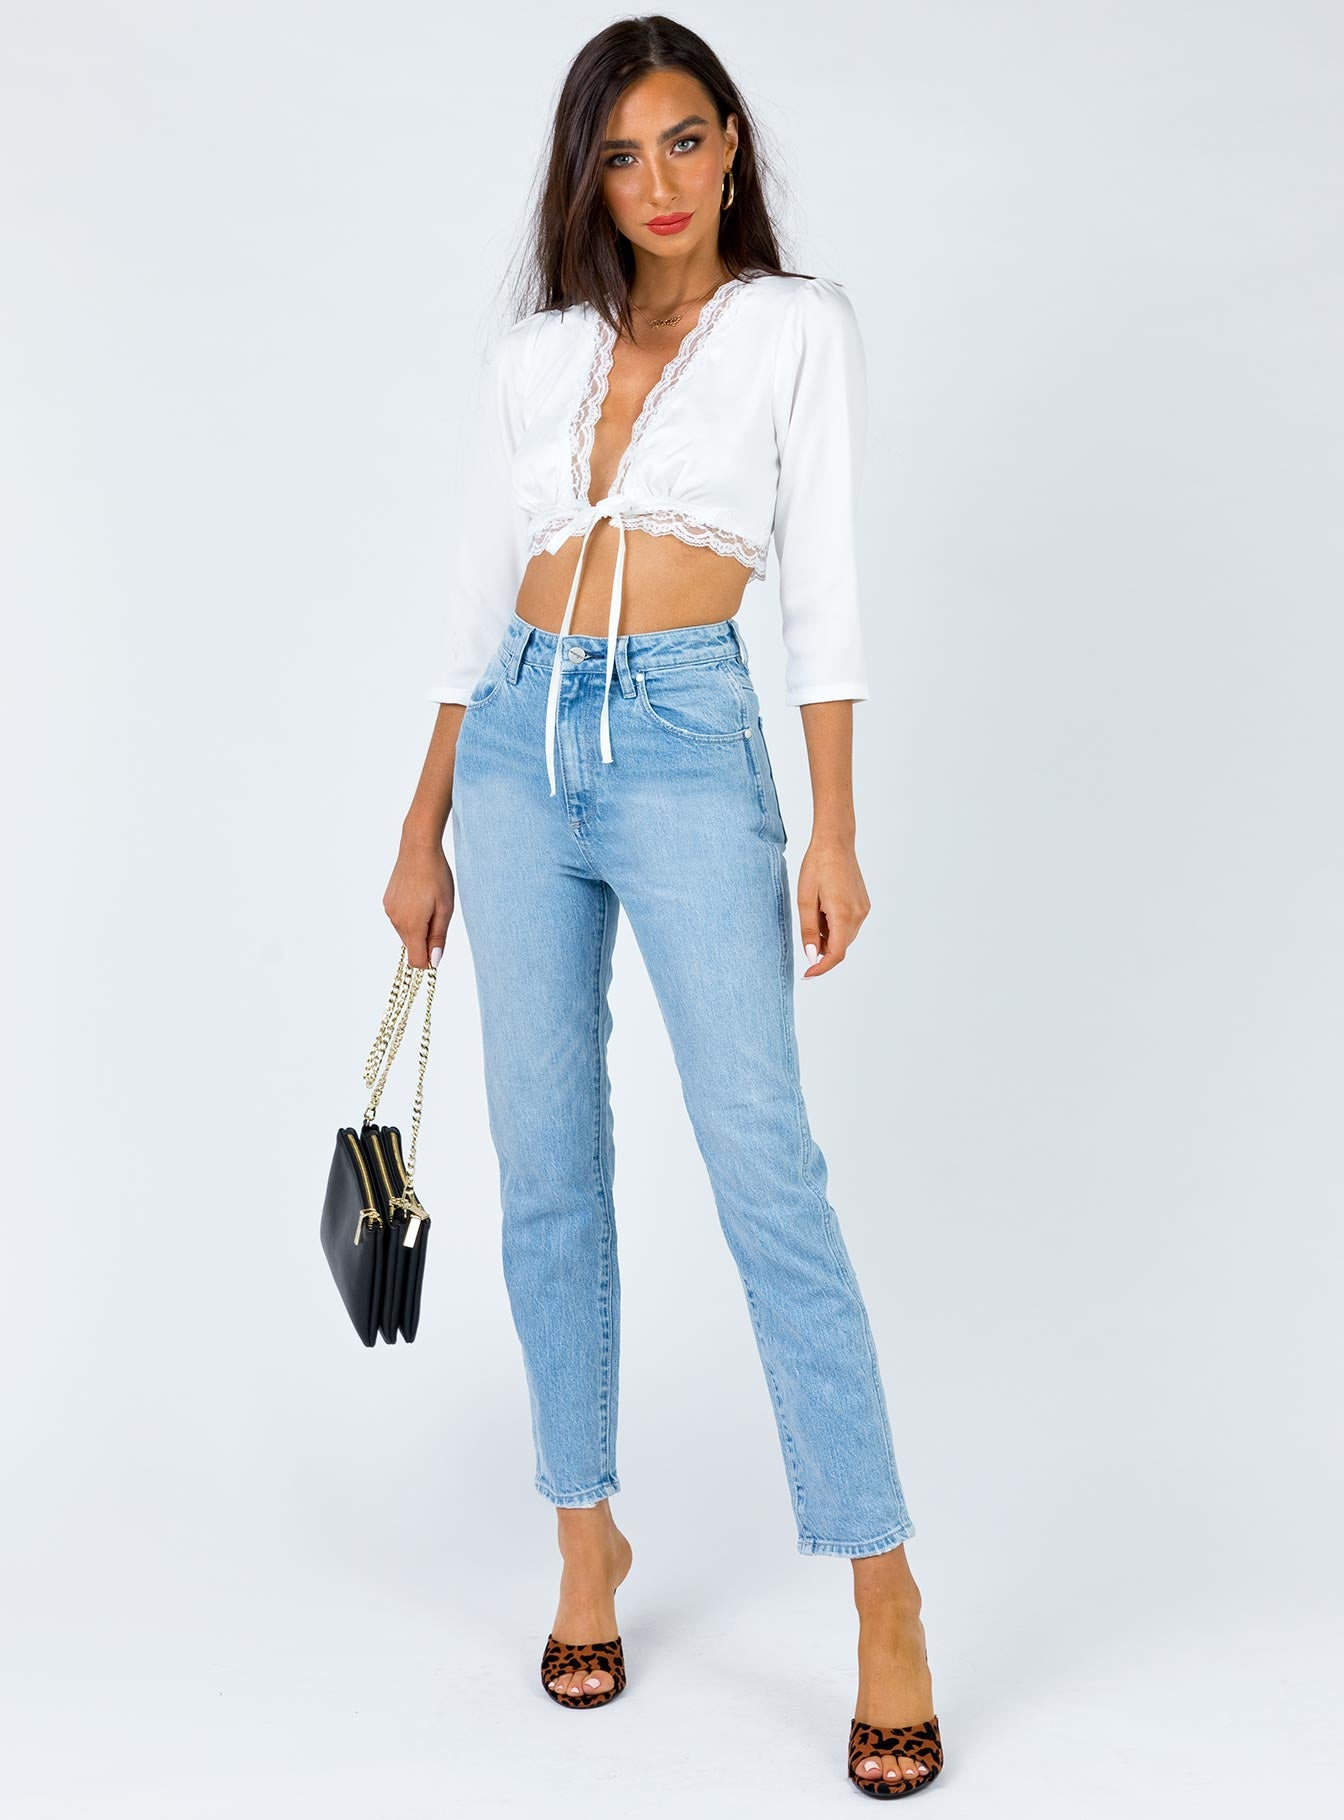 Zena Crop Top White